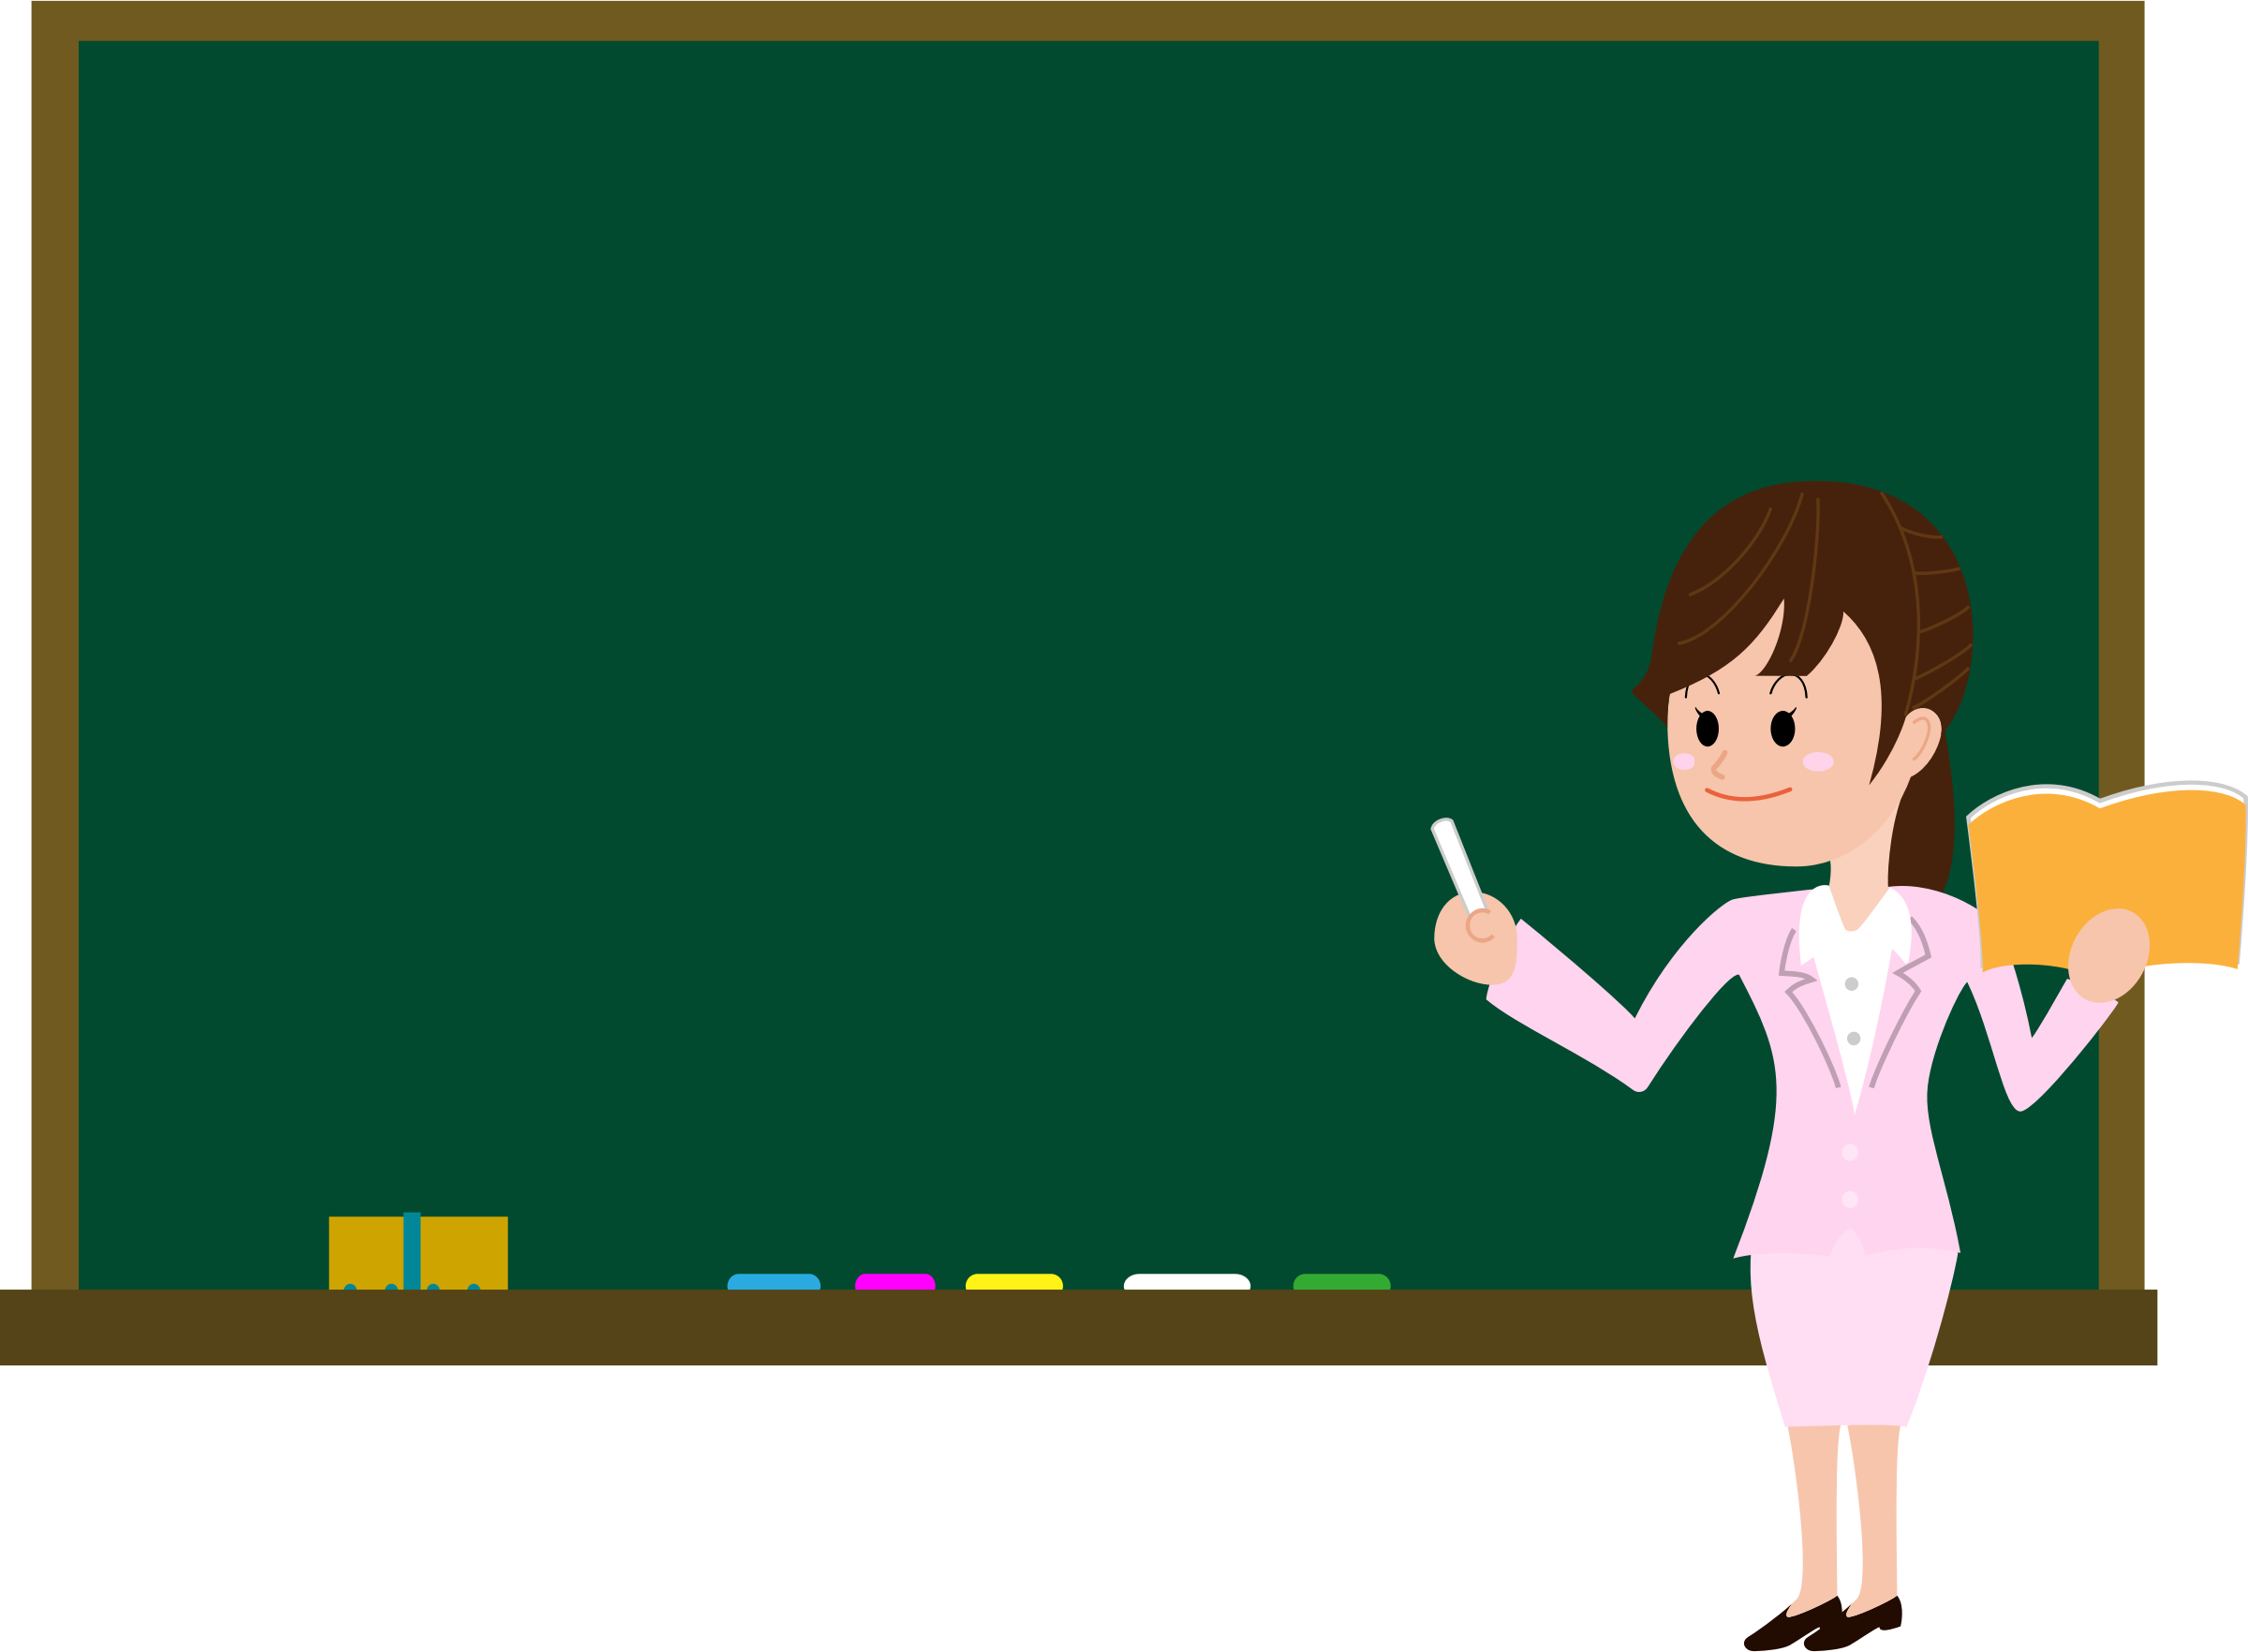 Download Female Teacher On Blackboard In Classroom image #46705